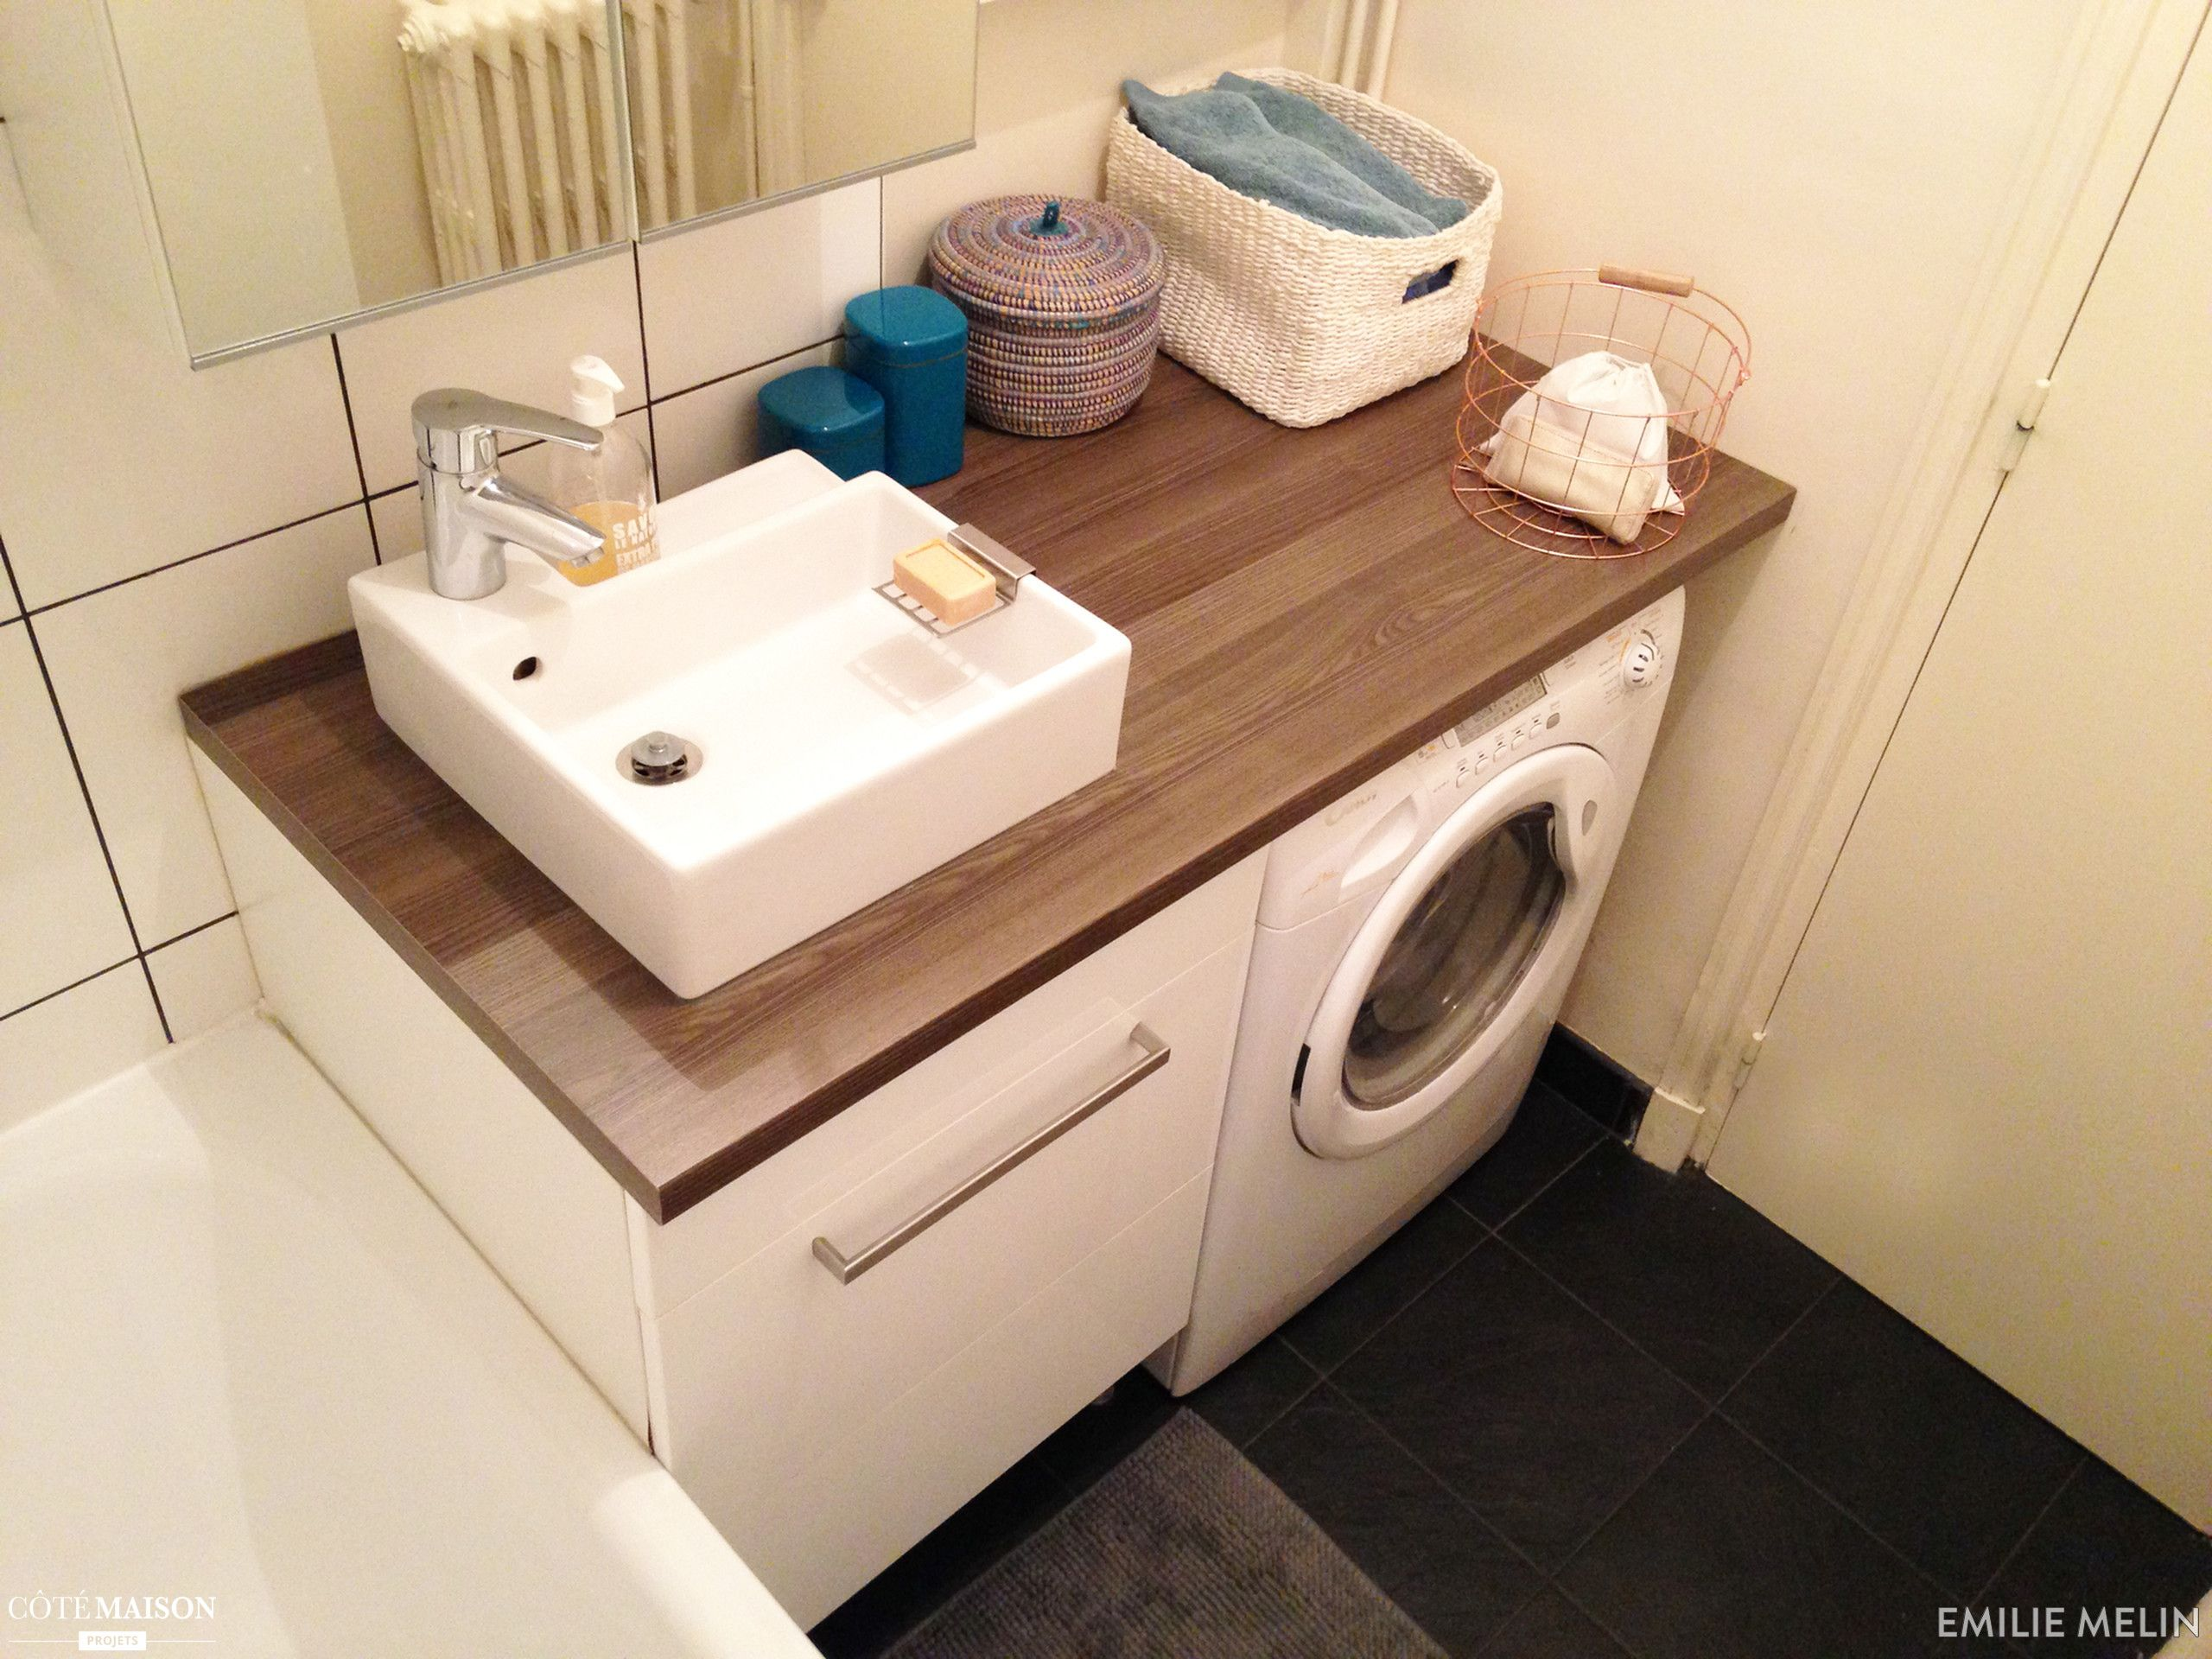 Pin By Nalan Ergen On Banyo Pinterest Laundry Studio And Small